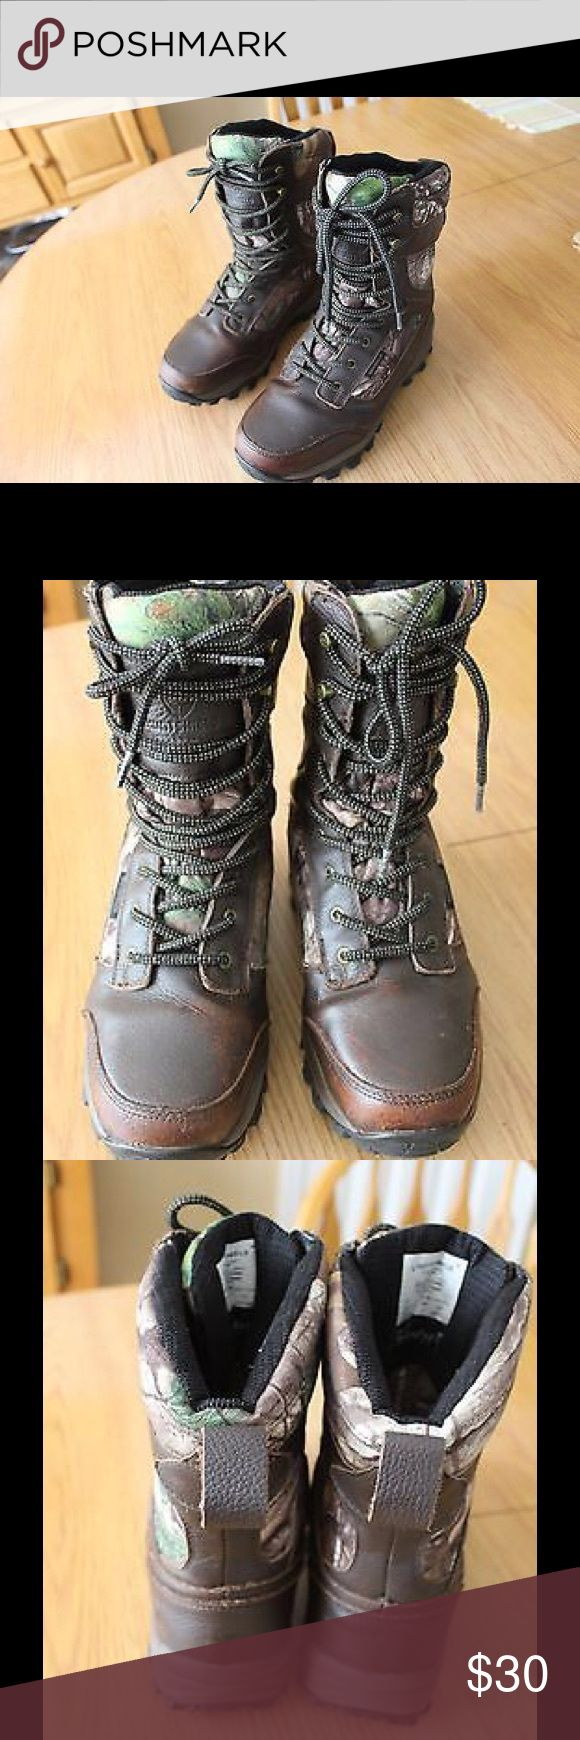 Huntshield Renegade Tracker Realtree XTRA Boots Pre-Owned Men's Size 8 USA 41 EUR Boots are in excellent condition with the exception toes are scuffed look at pictures.  FEATURES  Huntshield Renegade Tracker Realtree XTRA 1000 GMS Boots are made from a full grain leather, with a brushed polyester and mesh interior 1,000 g Thinsulate® Reinforced plastic toe cap Stainless steel and gunmetal finish to prevent rusting Thick EVA (Ethylene-vinyl acetate) making boots extra light weight Rubber slip…